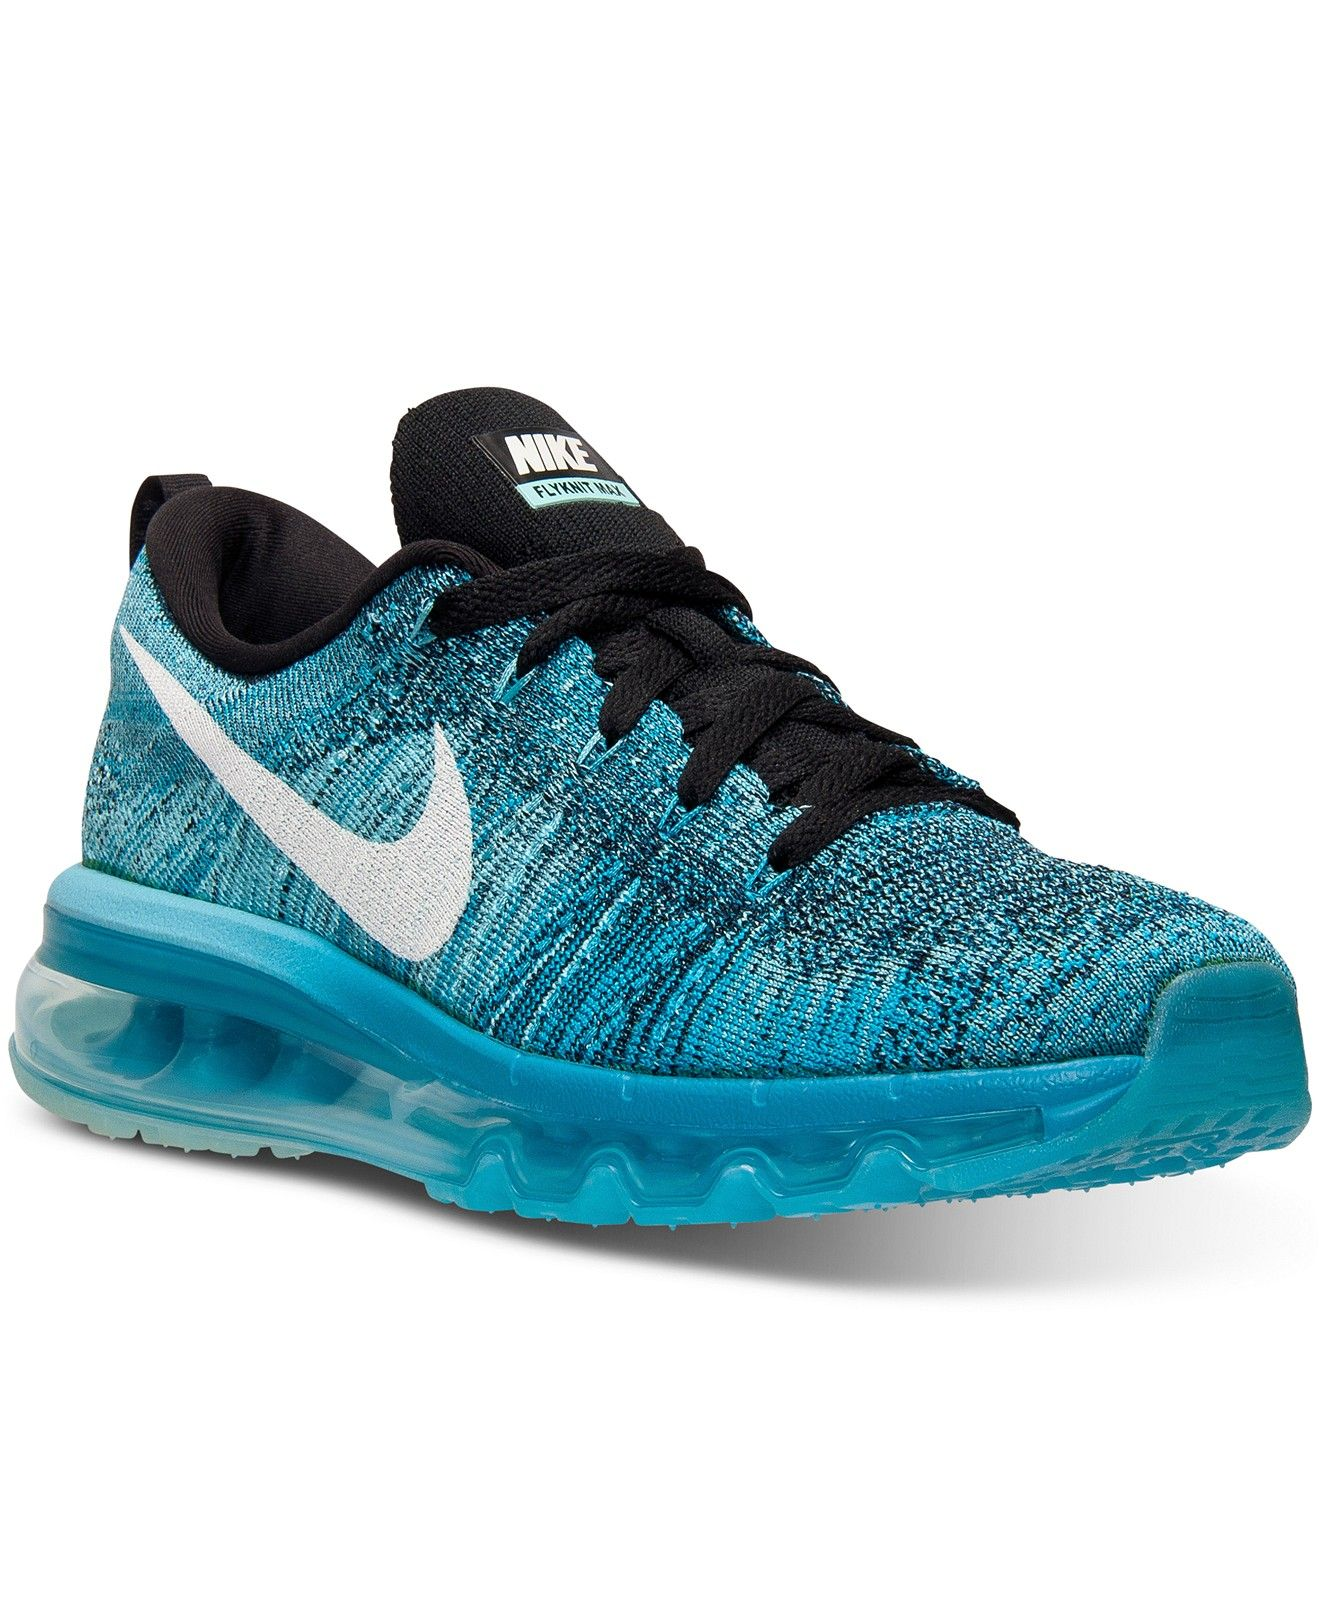 1449d16a4fea Nike Women s Flyknit Air Max Running Sneakers from Finish Line - Finish Line  Athletic Shoes - Shoes - Macy s